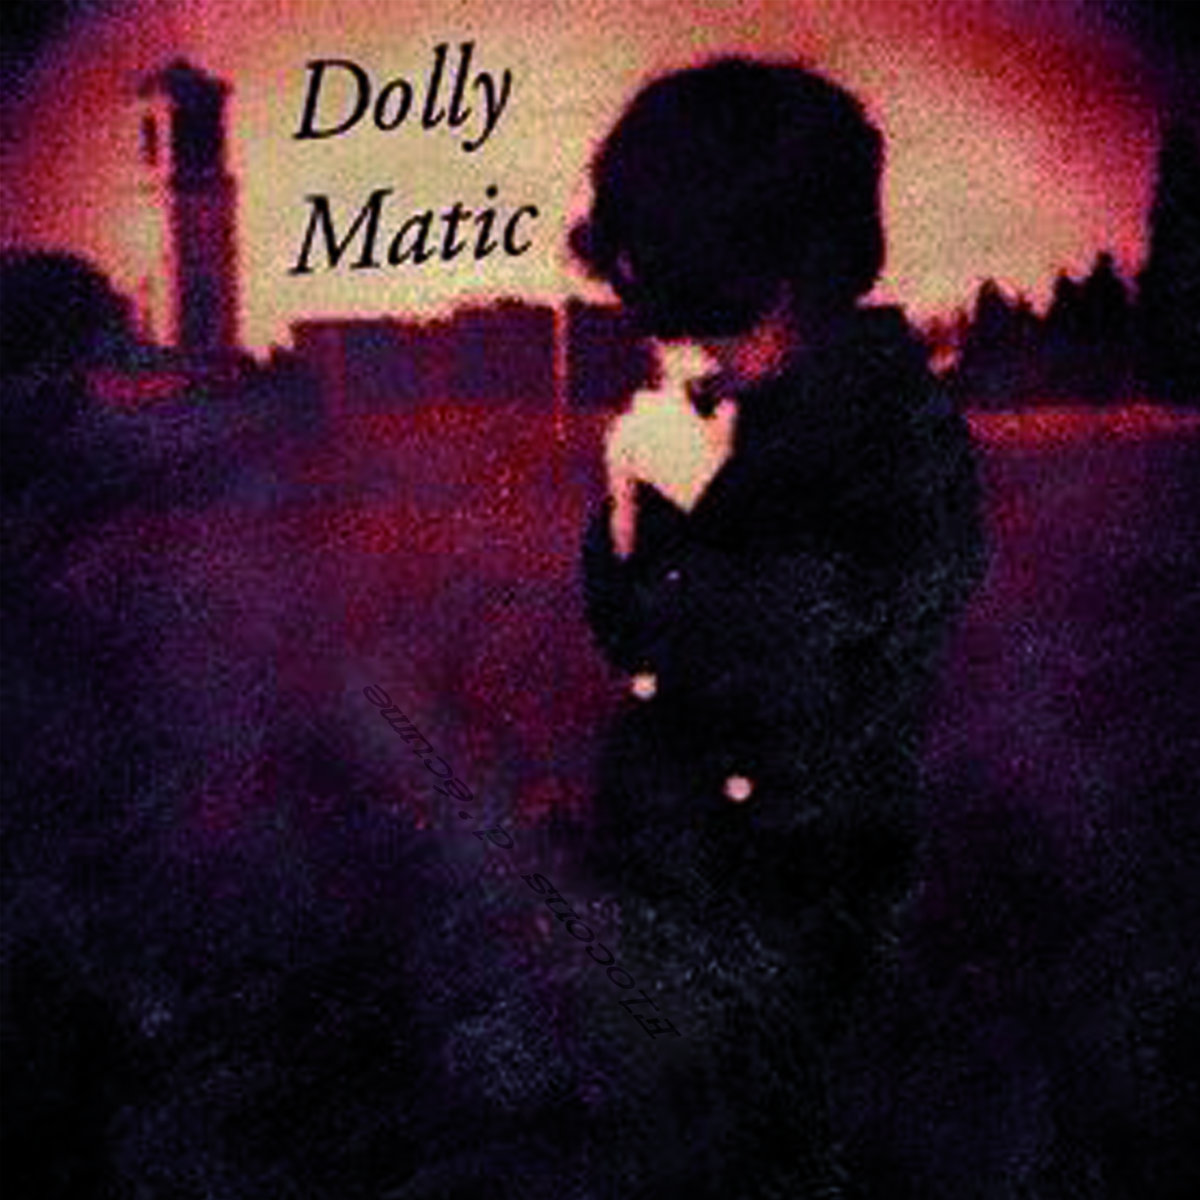 Dolly Matic – Flocons d'écume